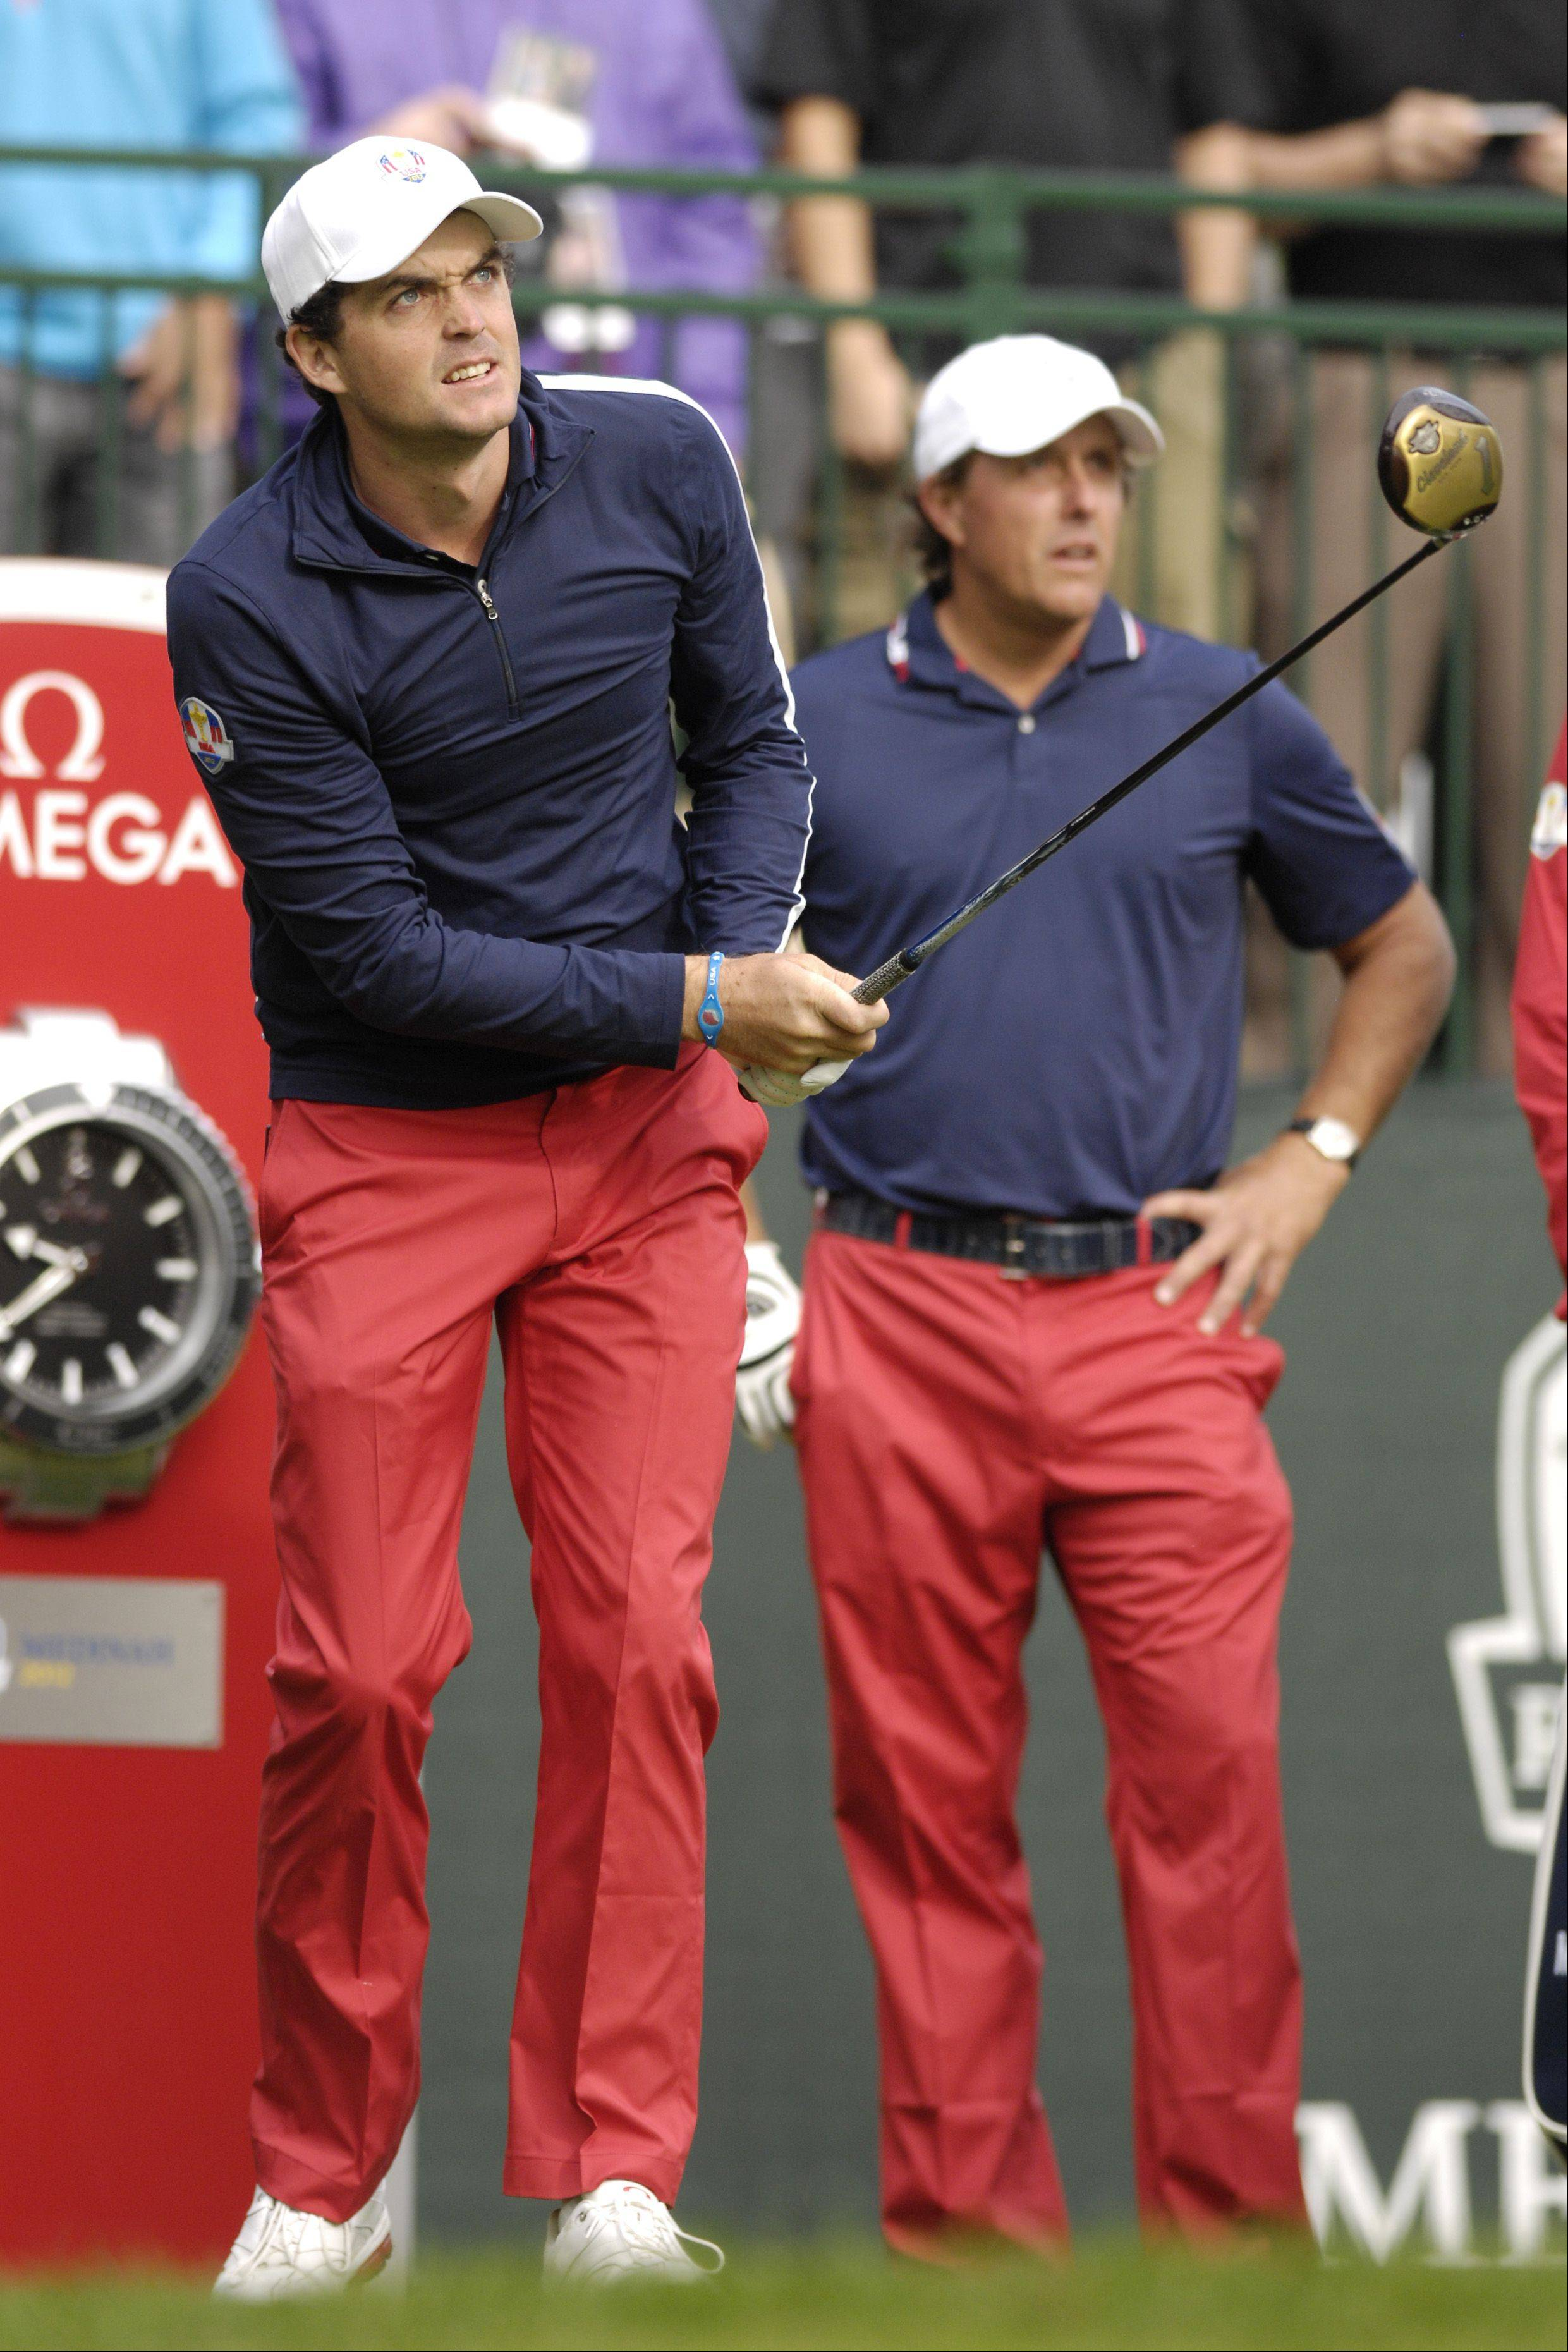 US Ryder Cup rookies have a wealth of experience